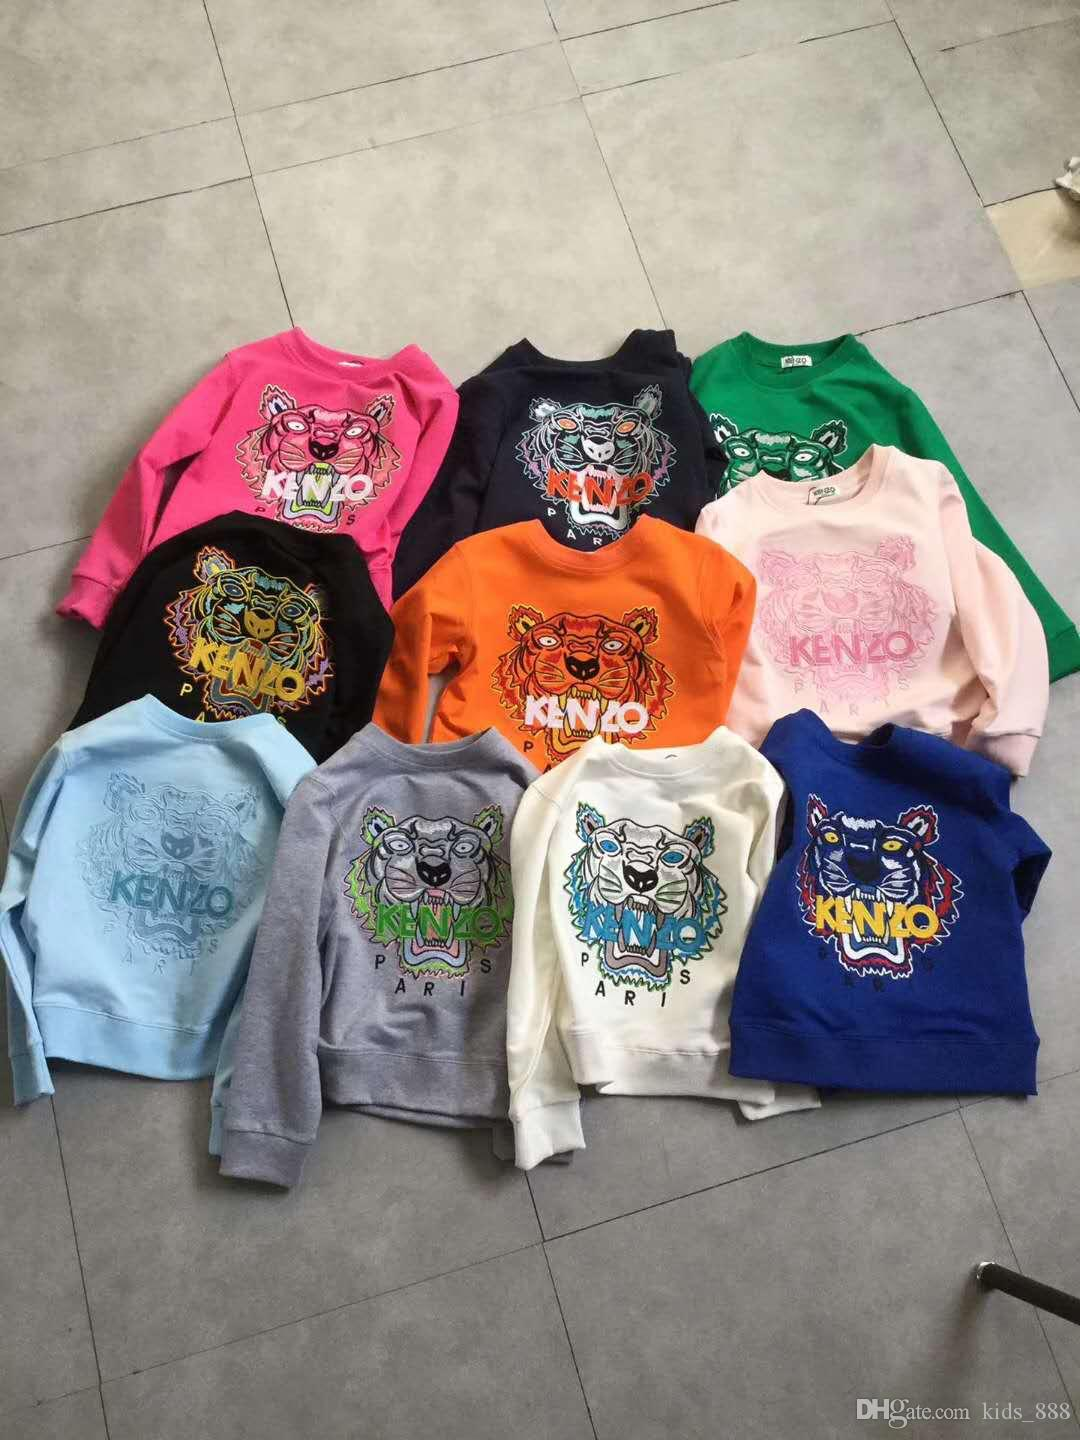 79c0bcd9 Baby Clothes Kids Clothing 2019 Autumn Newest Fashion Children Cotton  Exquisite Tiger Head Embroidery Kids Hoodies & Sweatshirts Jackets Boys Red  Jacket ...